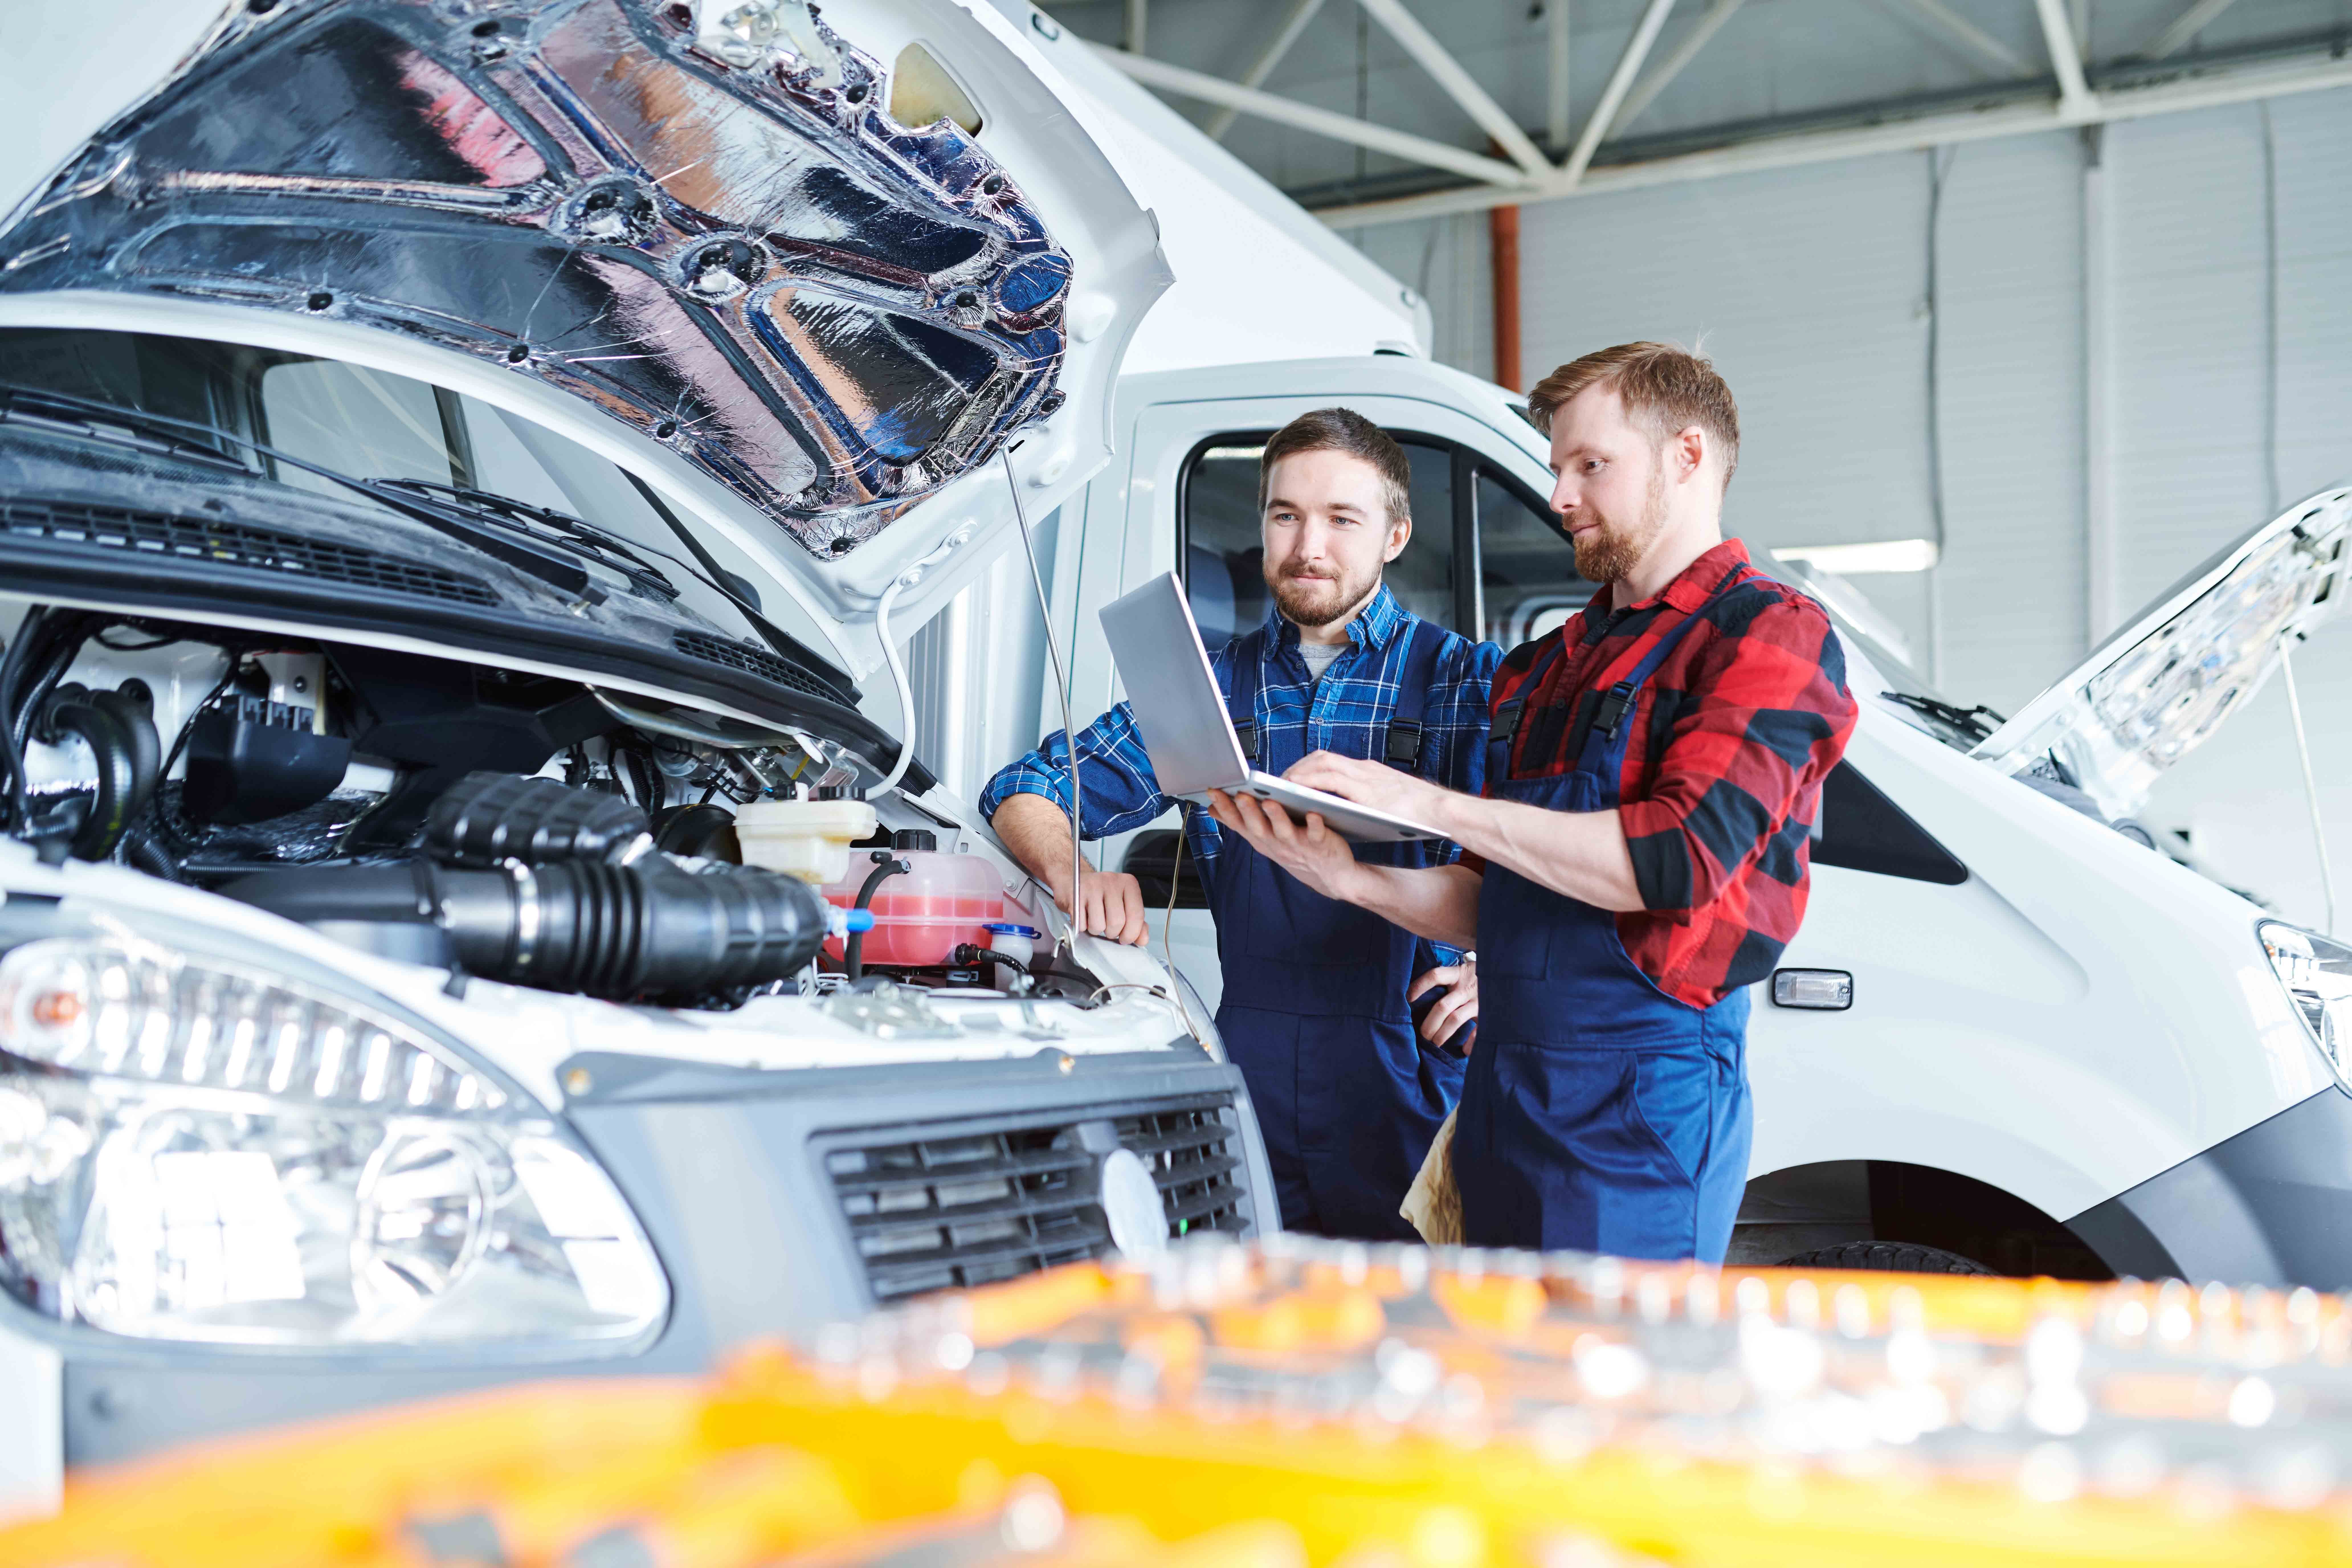 Some Incredible Advantages of Automotive Repair Services in Hobart, Tasmania